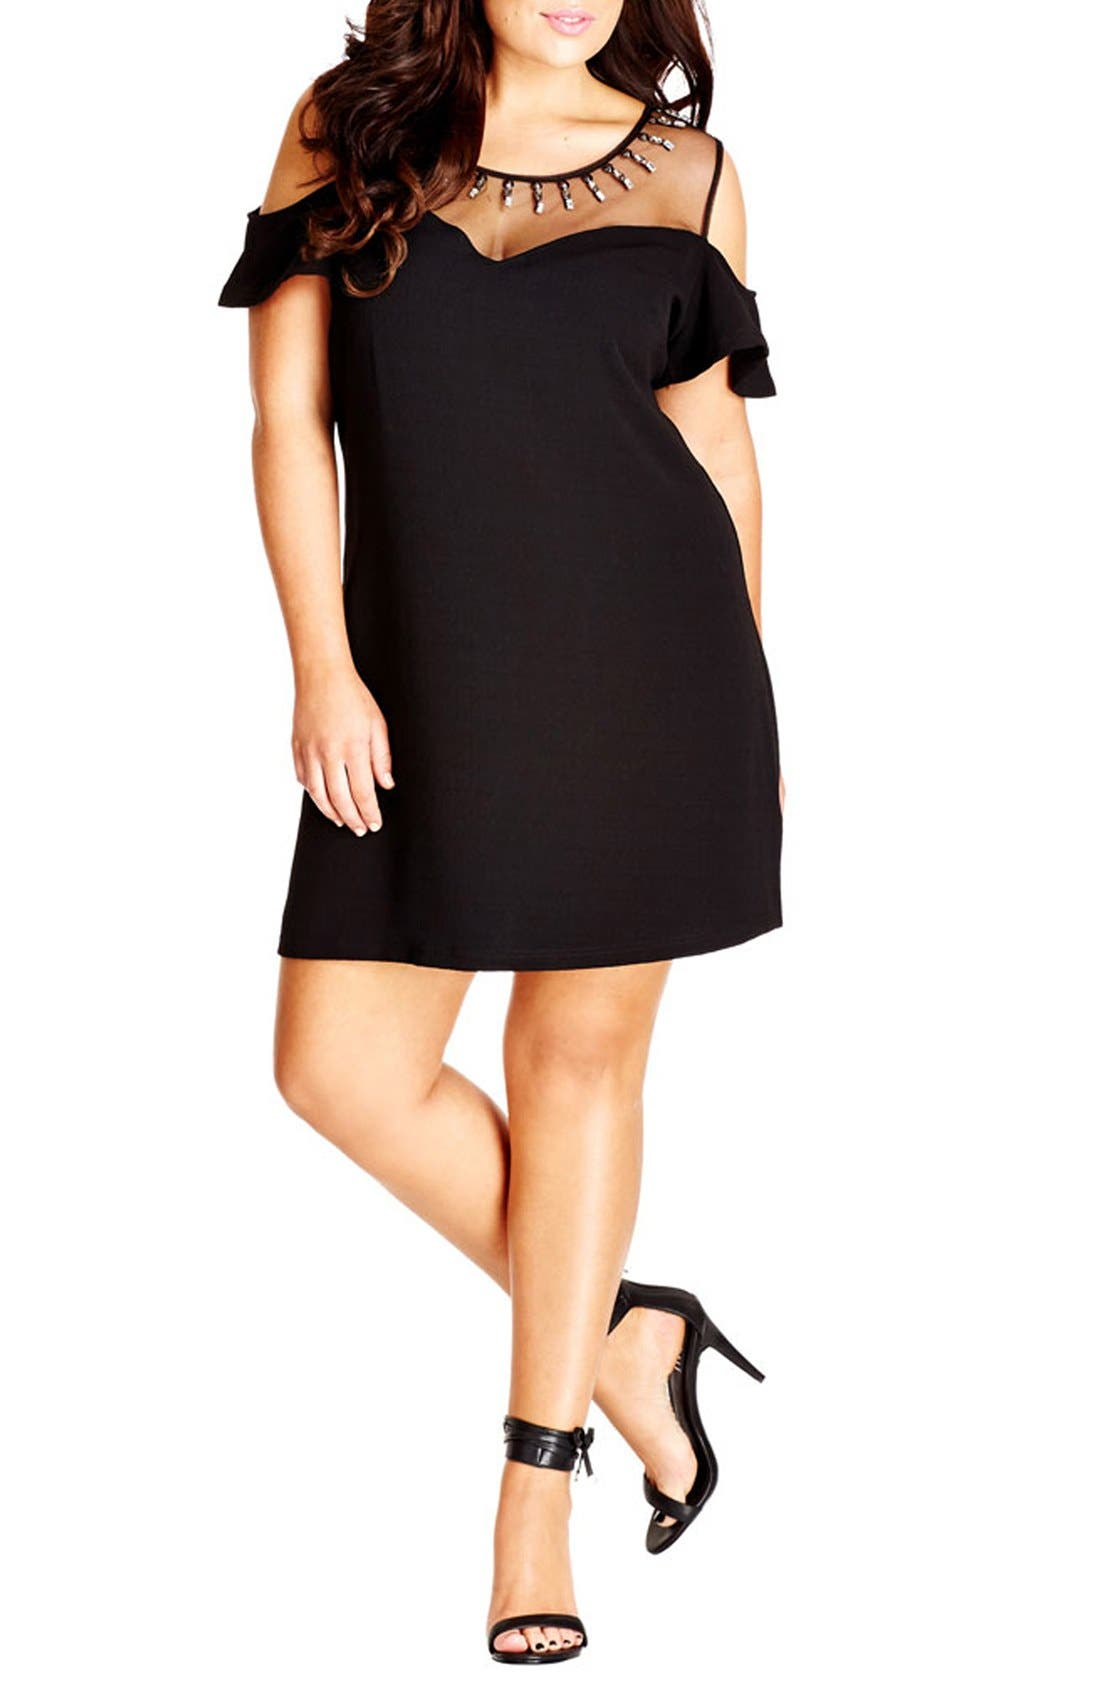 Alternate Image 1 Selected - City Chic 'Stud Star' Illusion OfftheShoulder ShiftDress (Plus Size)